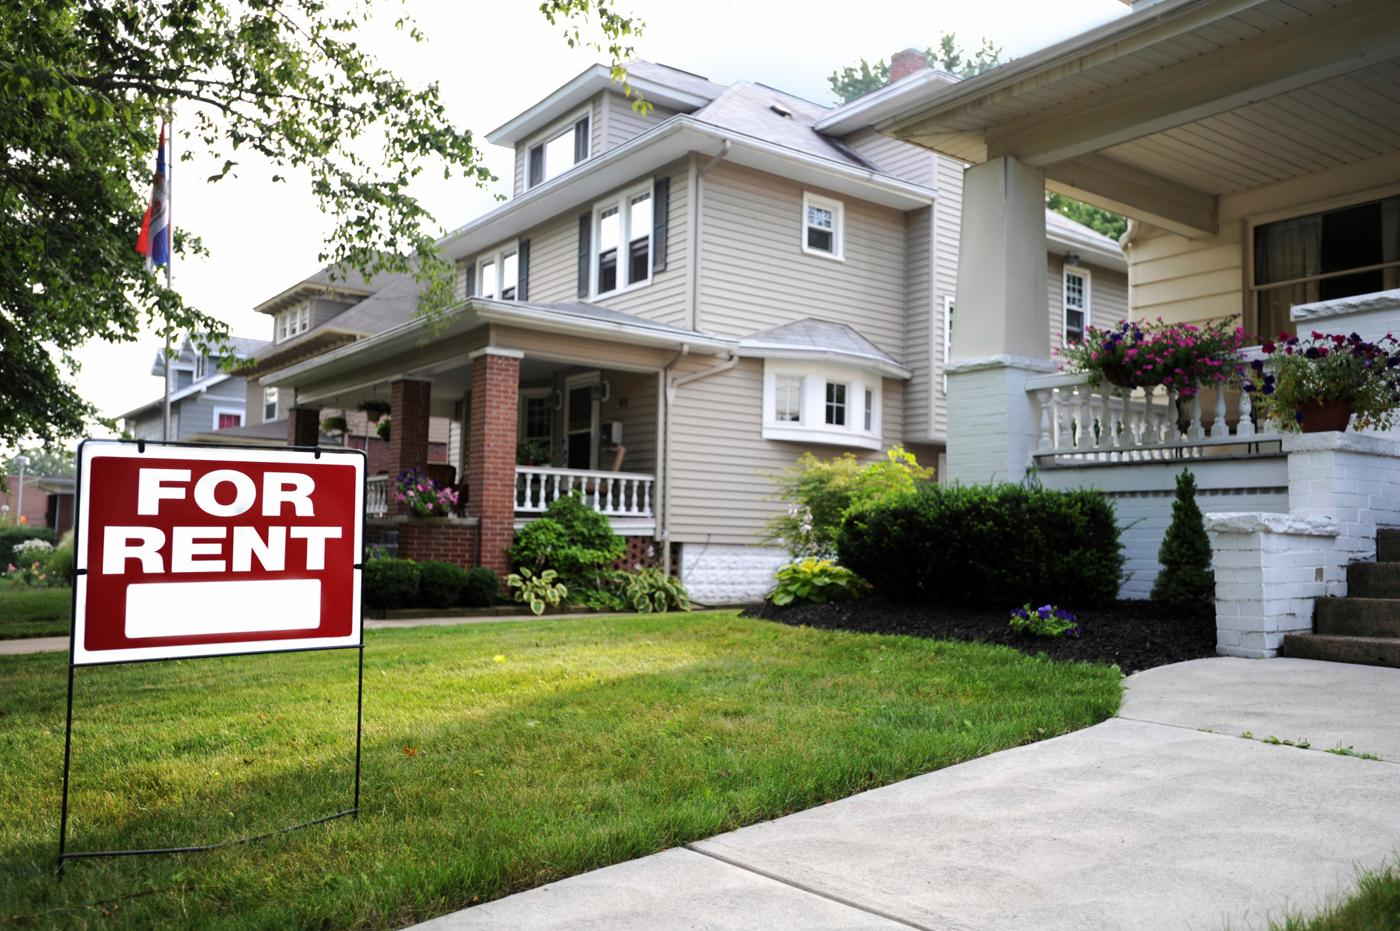 Omaha houses for rent berkshire real estate omaha ne - 3 bedroom townhomes for rent in md ...